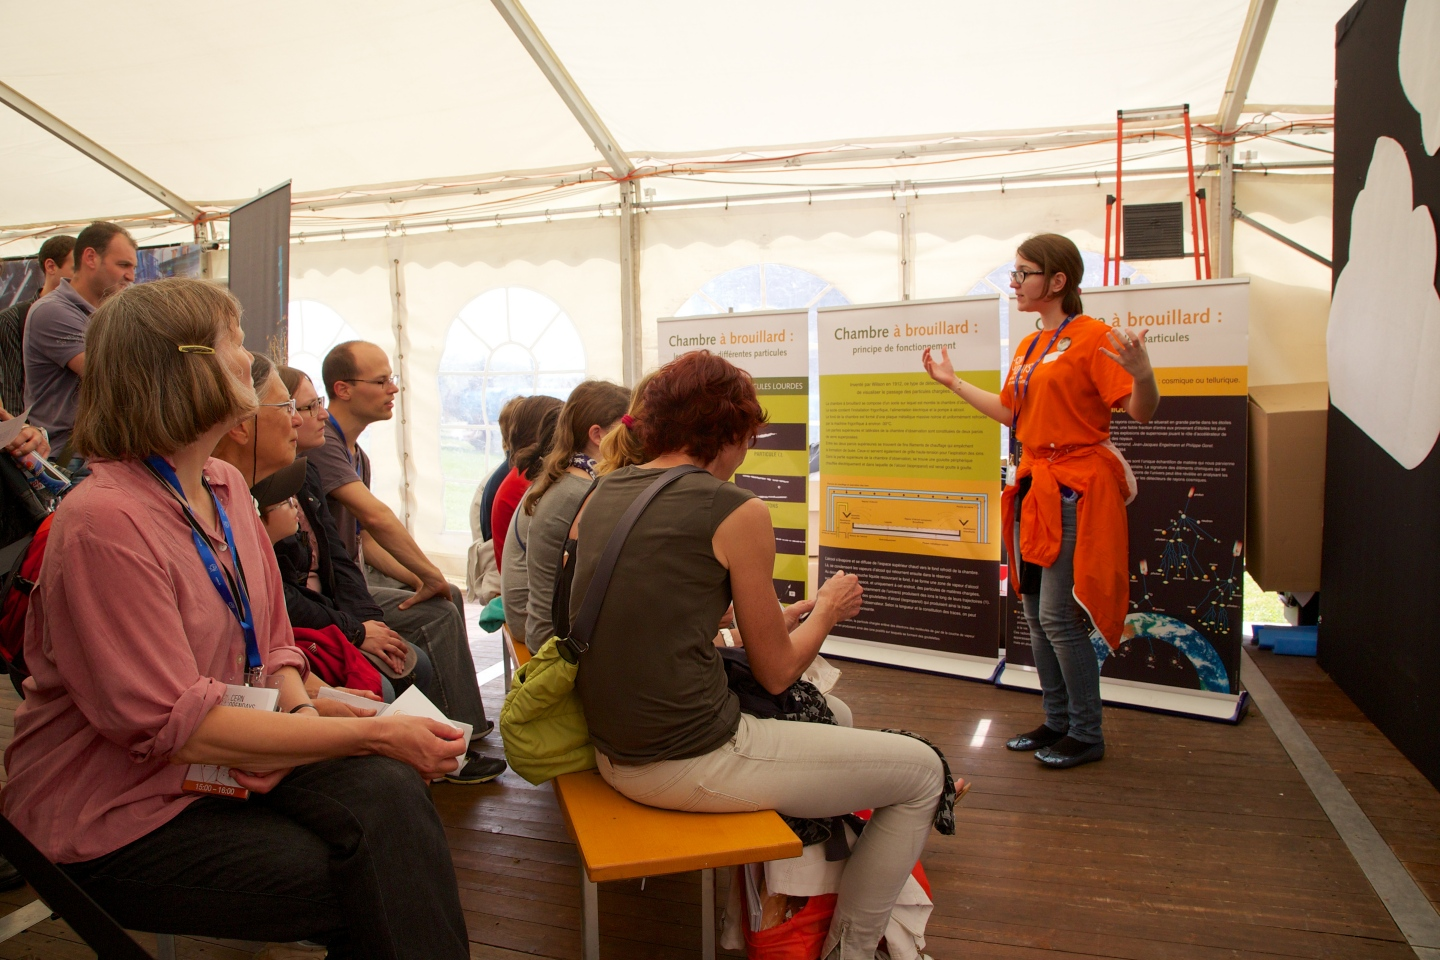 Detector Site,General,Social,opendays2013,ATLAS,Outreach,Public,Collaboration,Site